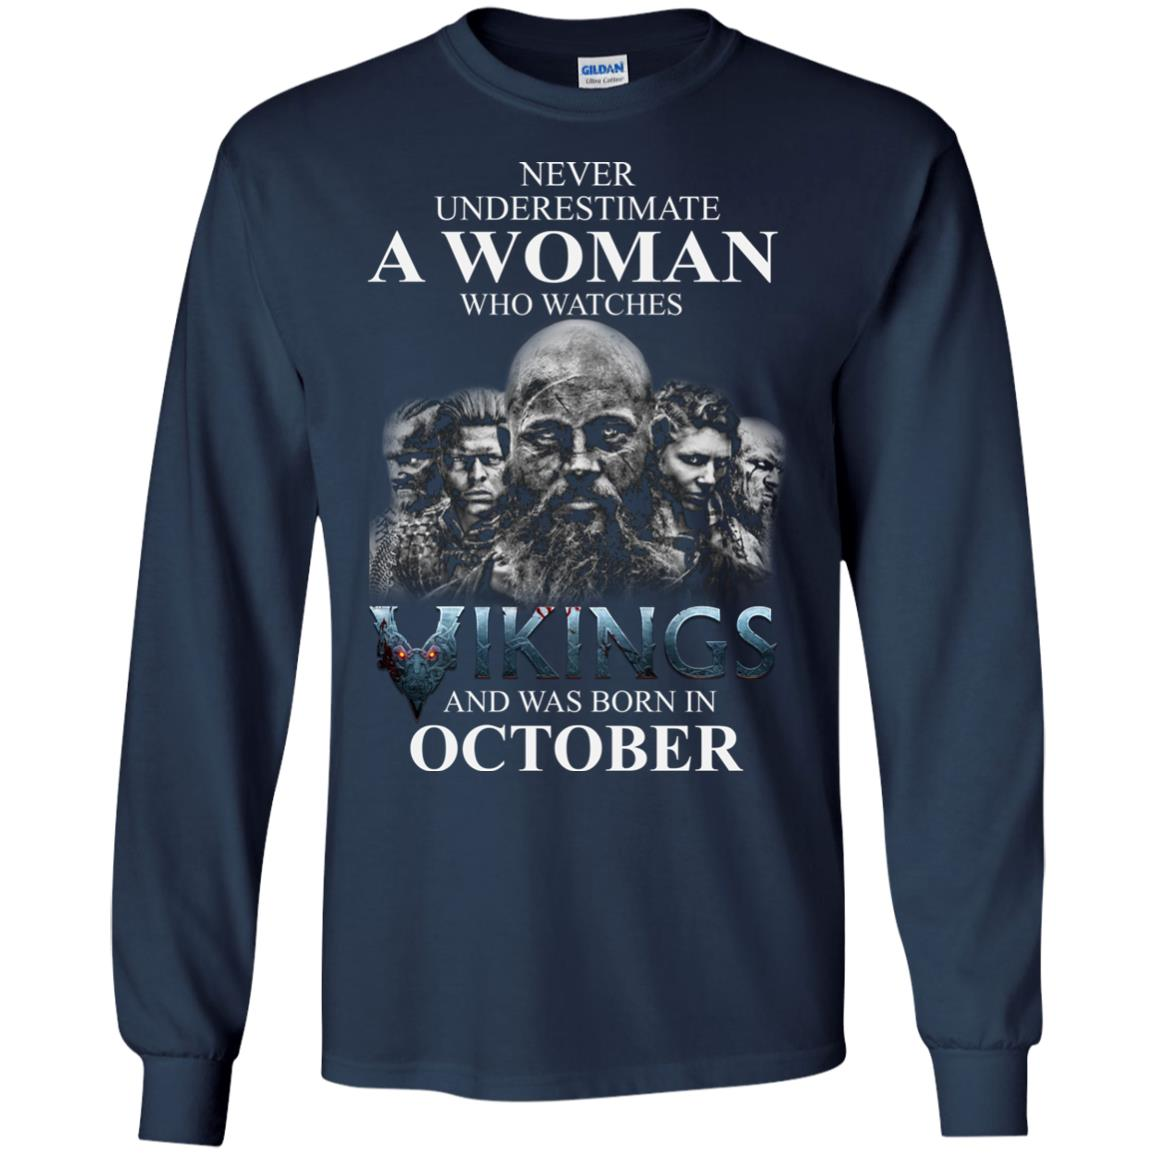 image 1246 - Never Underestimate A woman who watches Vikings and was born in October shirt